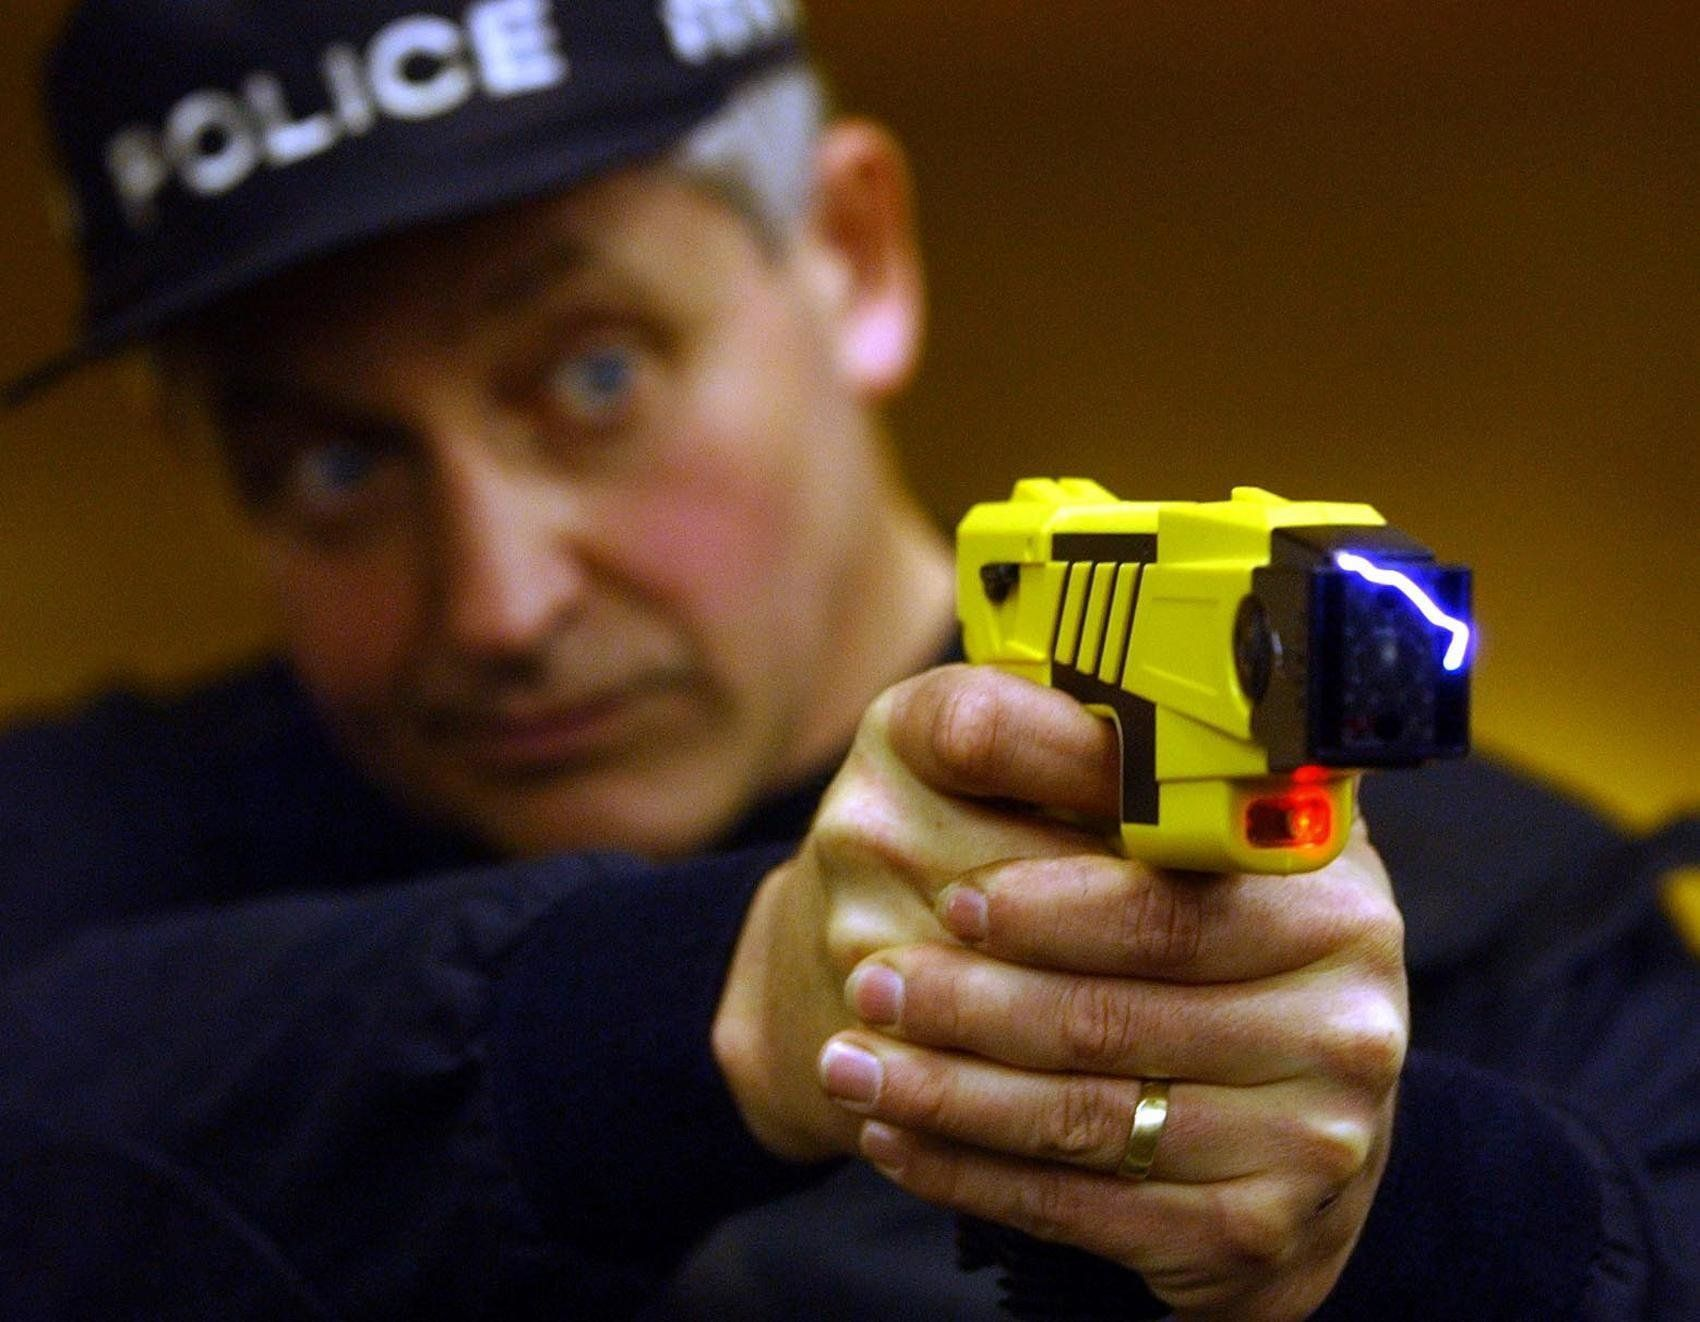 A policeman demonstrates how a taser is used at the firearms range of Northamptonshire Police (stock